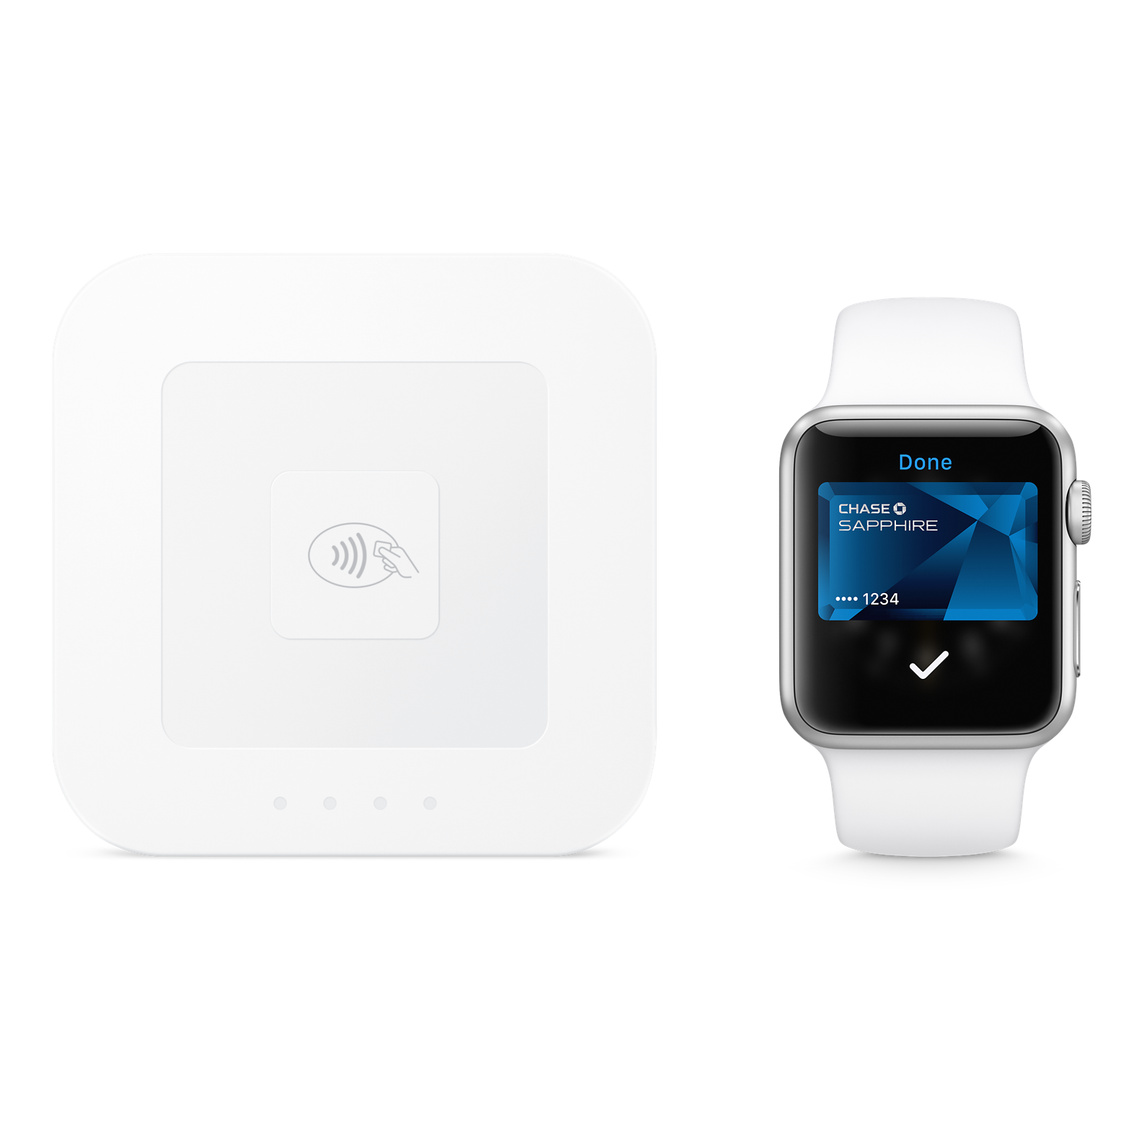 212d5edbc0071 Square Reader + Apple Pay and Chip Cards - Apple